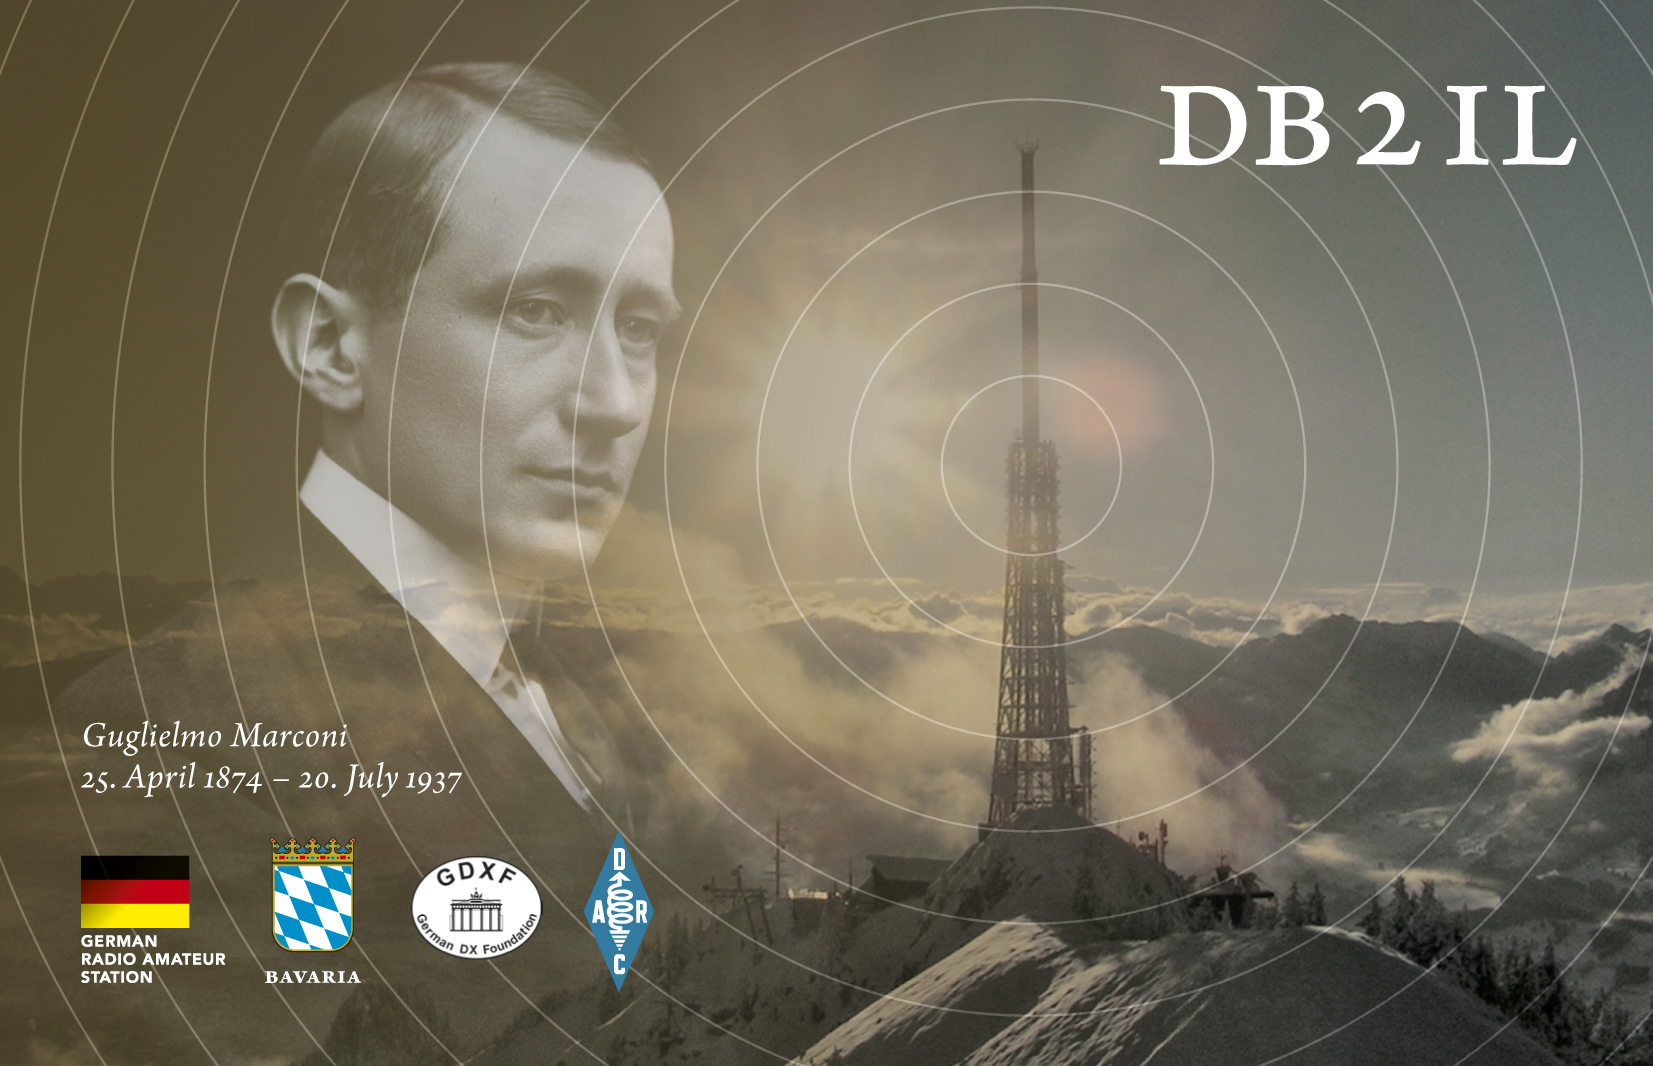 QSL image for DB2IL